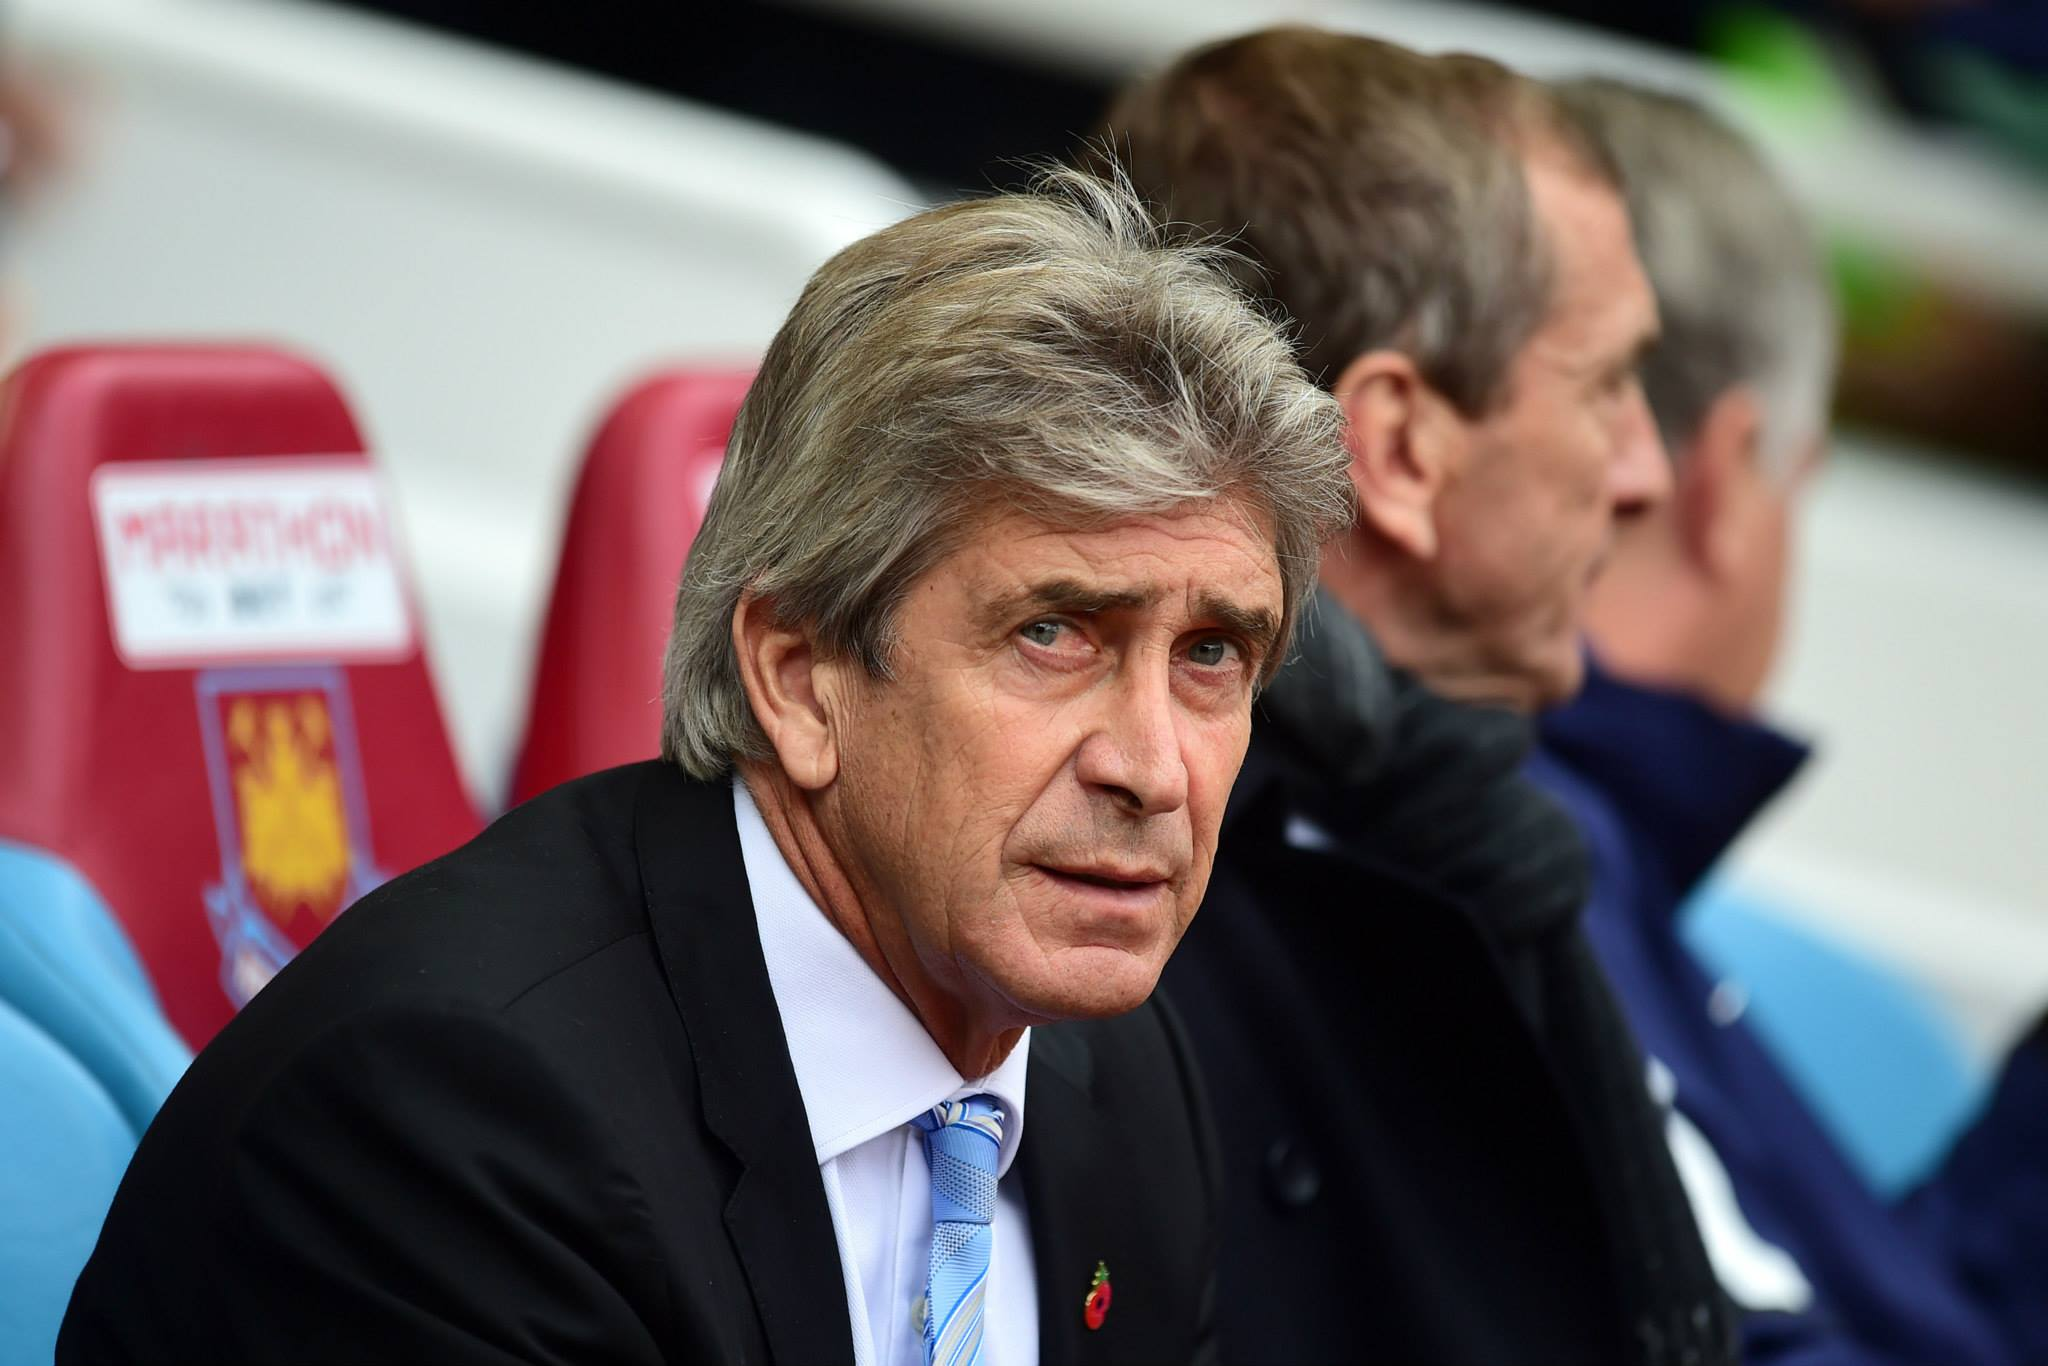 Incoming - Pellegrini is under pressure after two losses and a dismal draw in City's last three games. Courtesy@MCFC